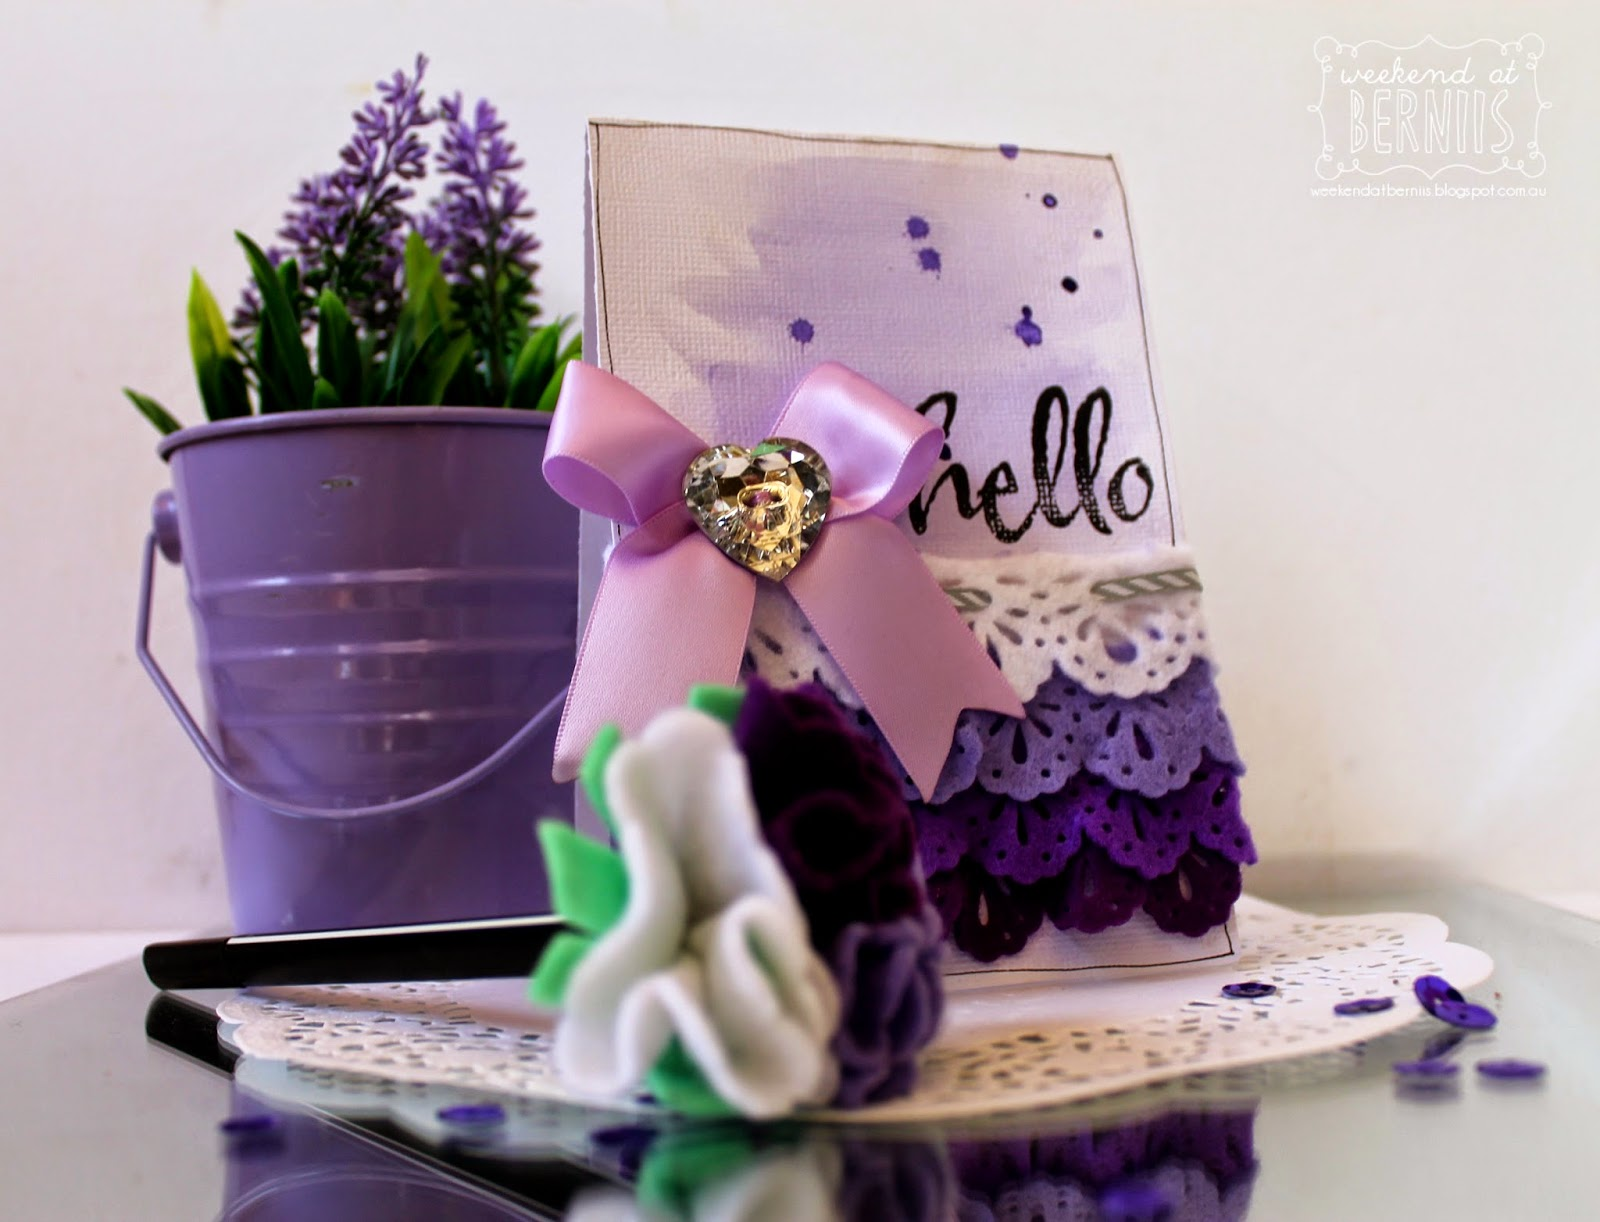 Hello card by Bernii Miller for Couture Creations.